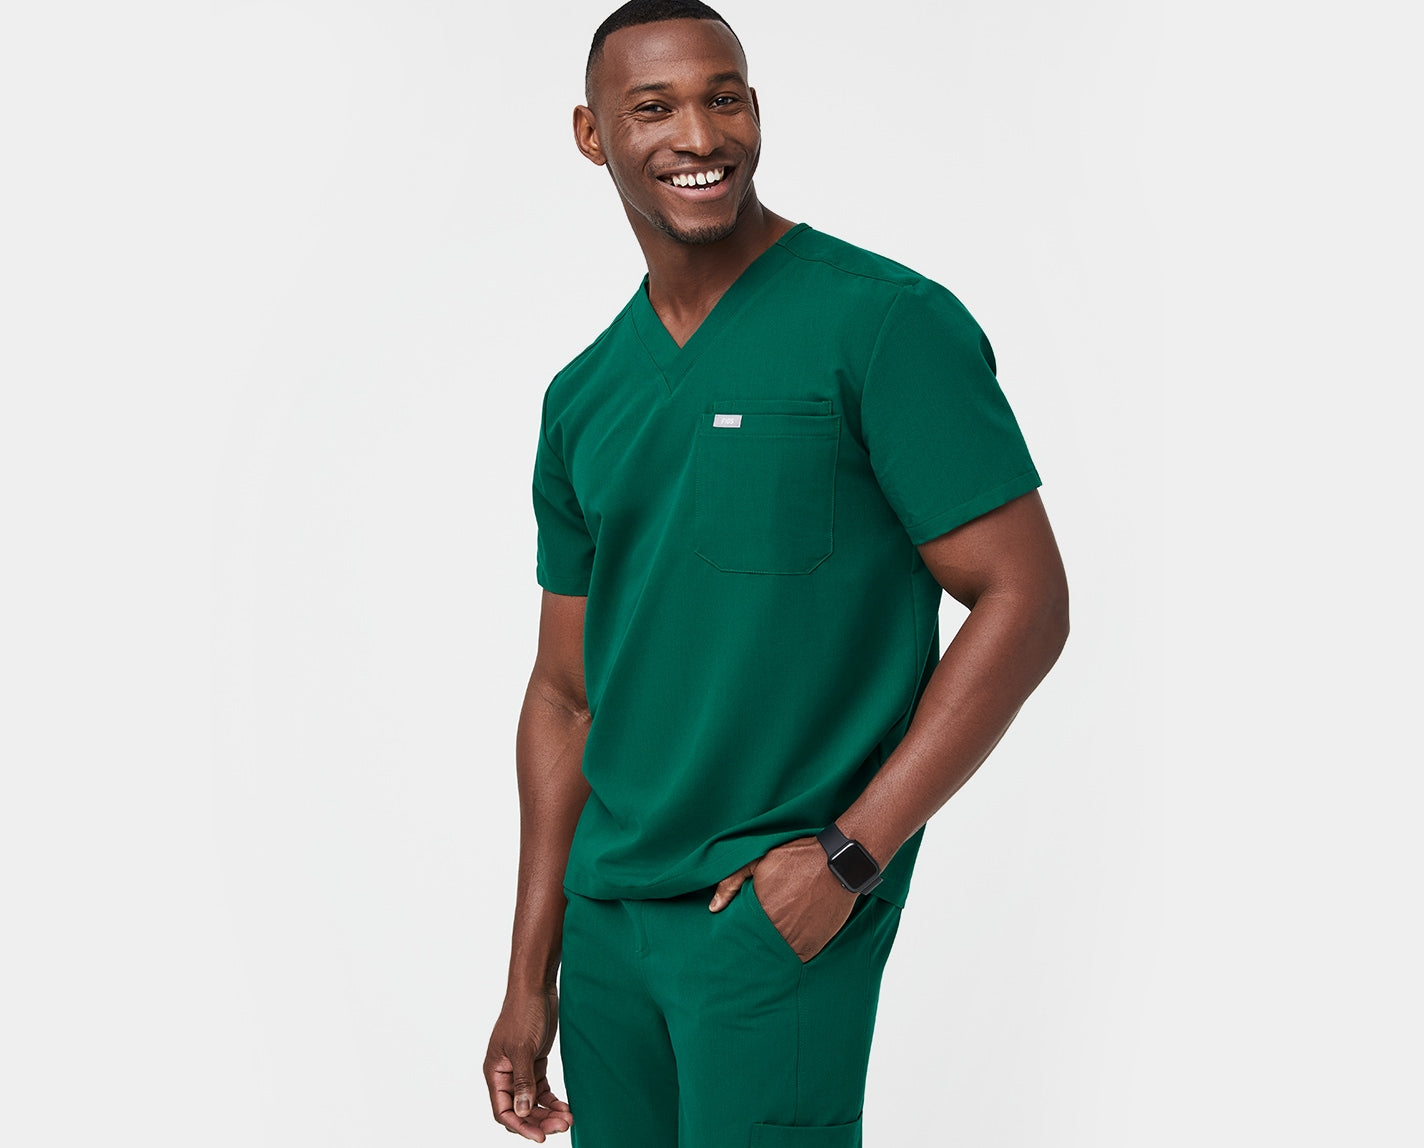 Simple design. Modern edge. Pure performance. The Leon's tailored, lean cut and functional double chest pocket is modern without sacrificing the utility you need to perform at your best. Features our proprietary FIONx fabric.